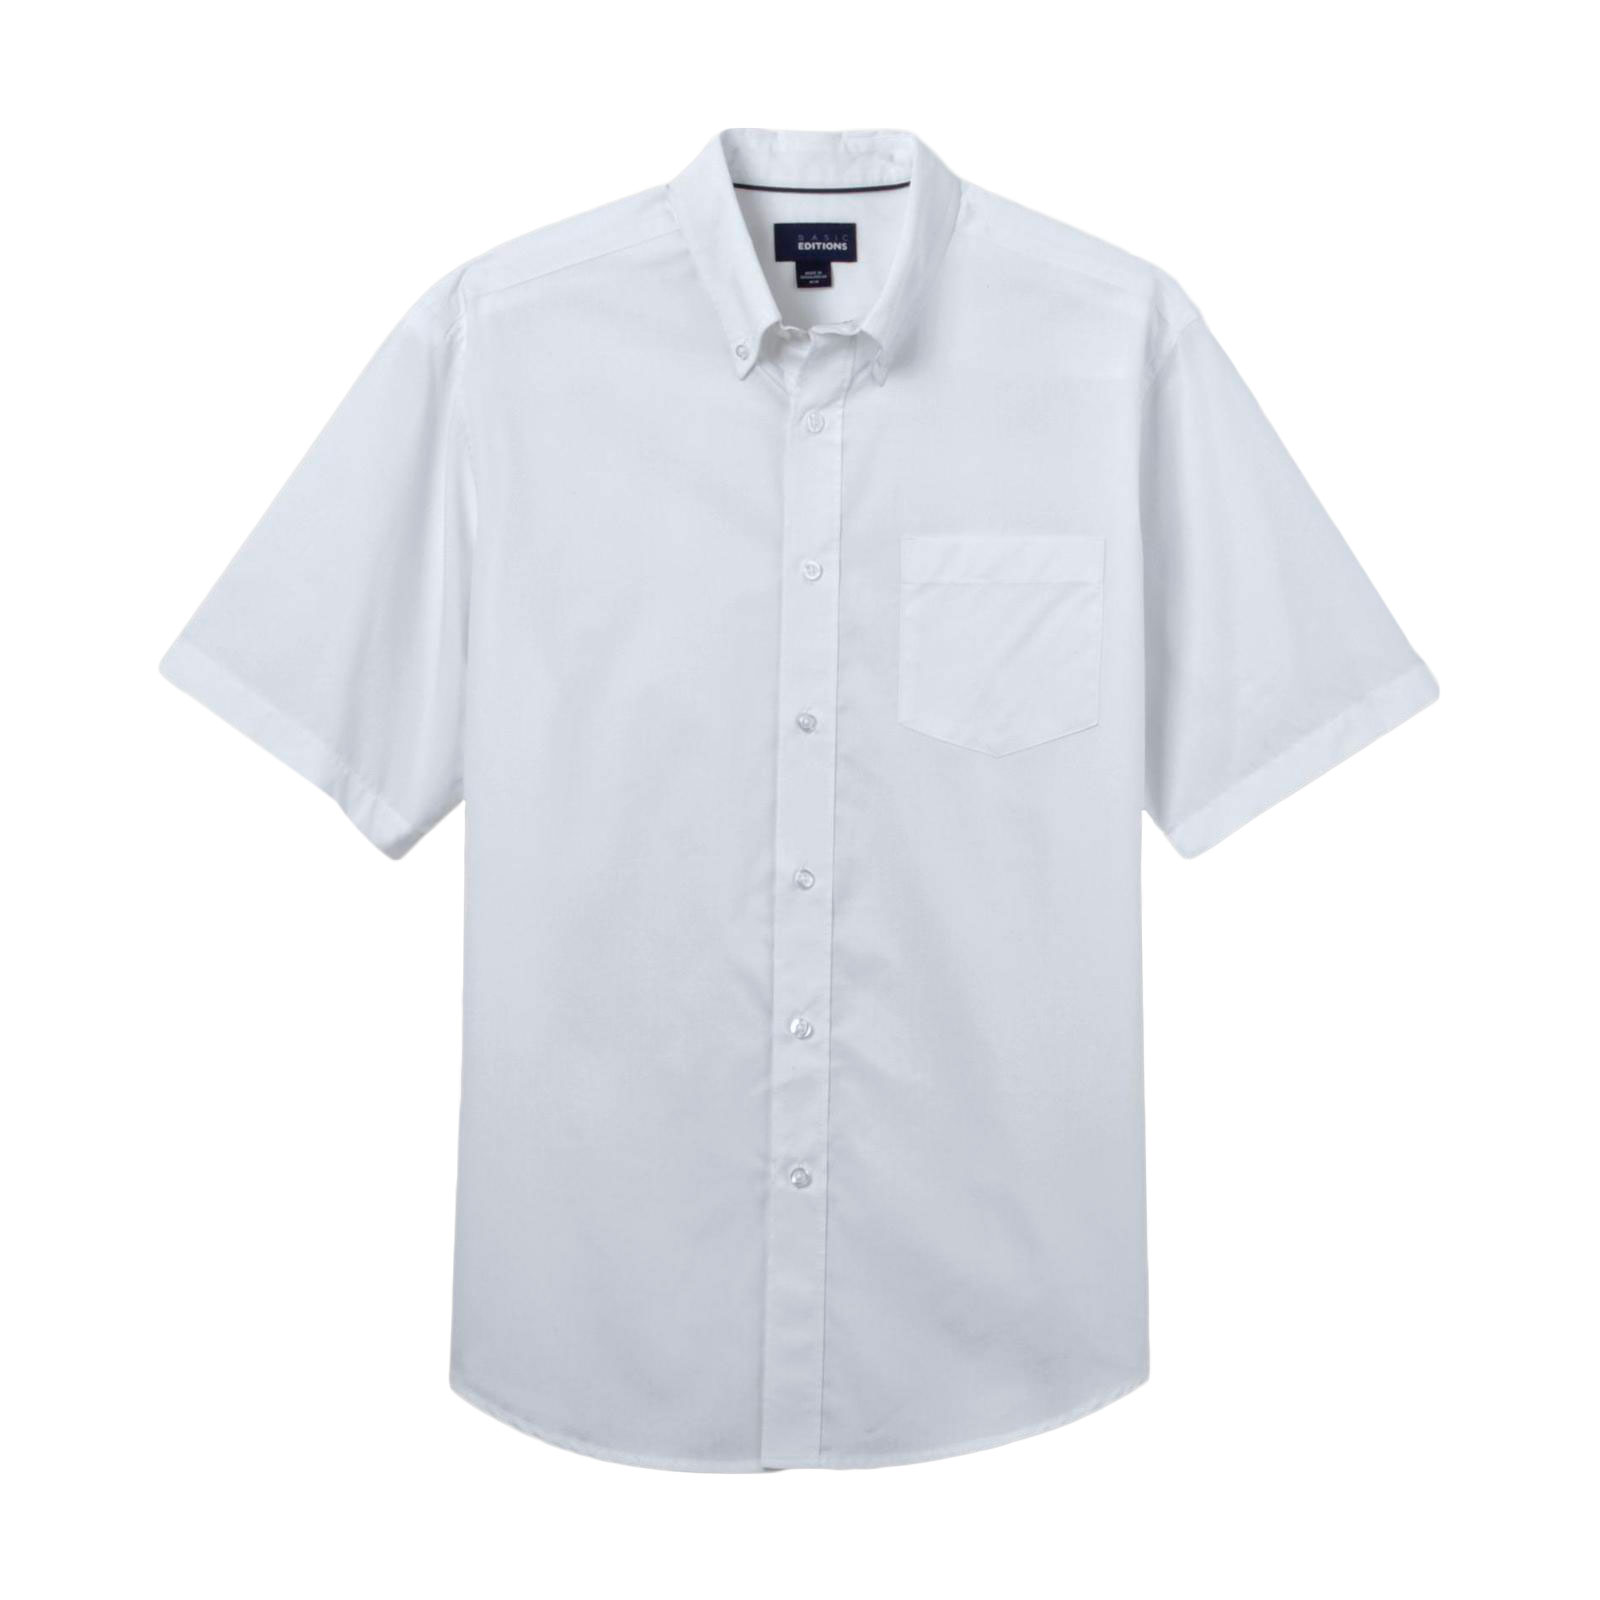 Basic Editions Men's Big & Tall Easy Care Woven Shirt at Kmart.com